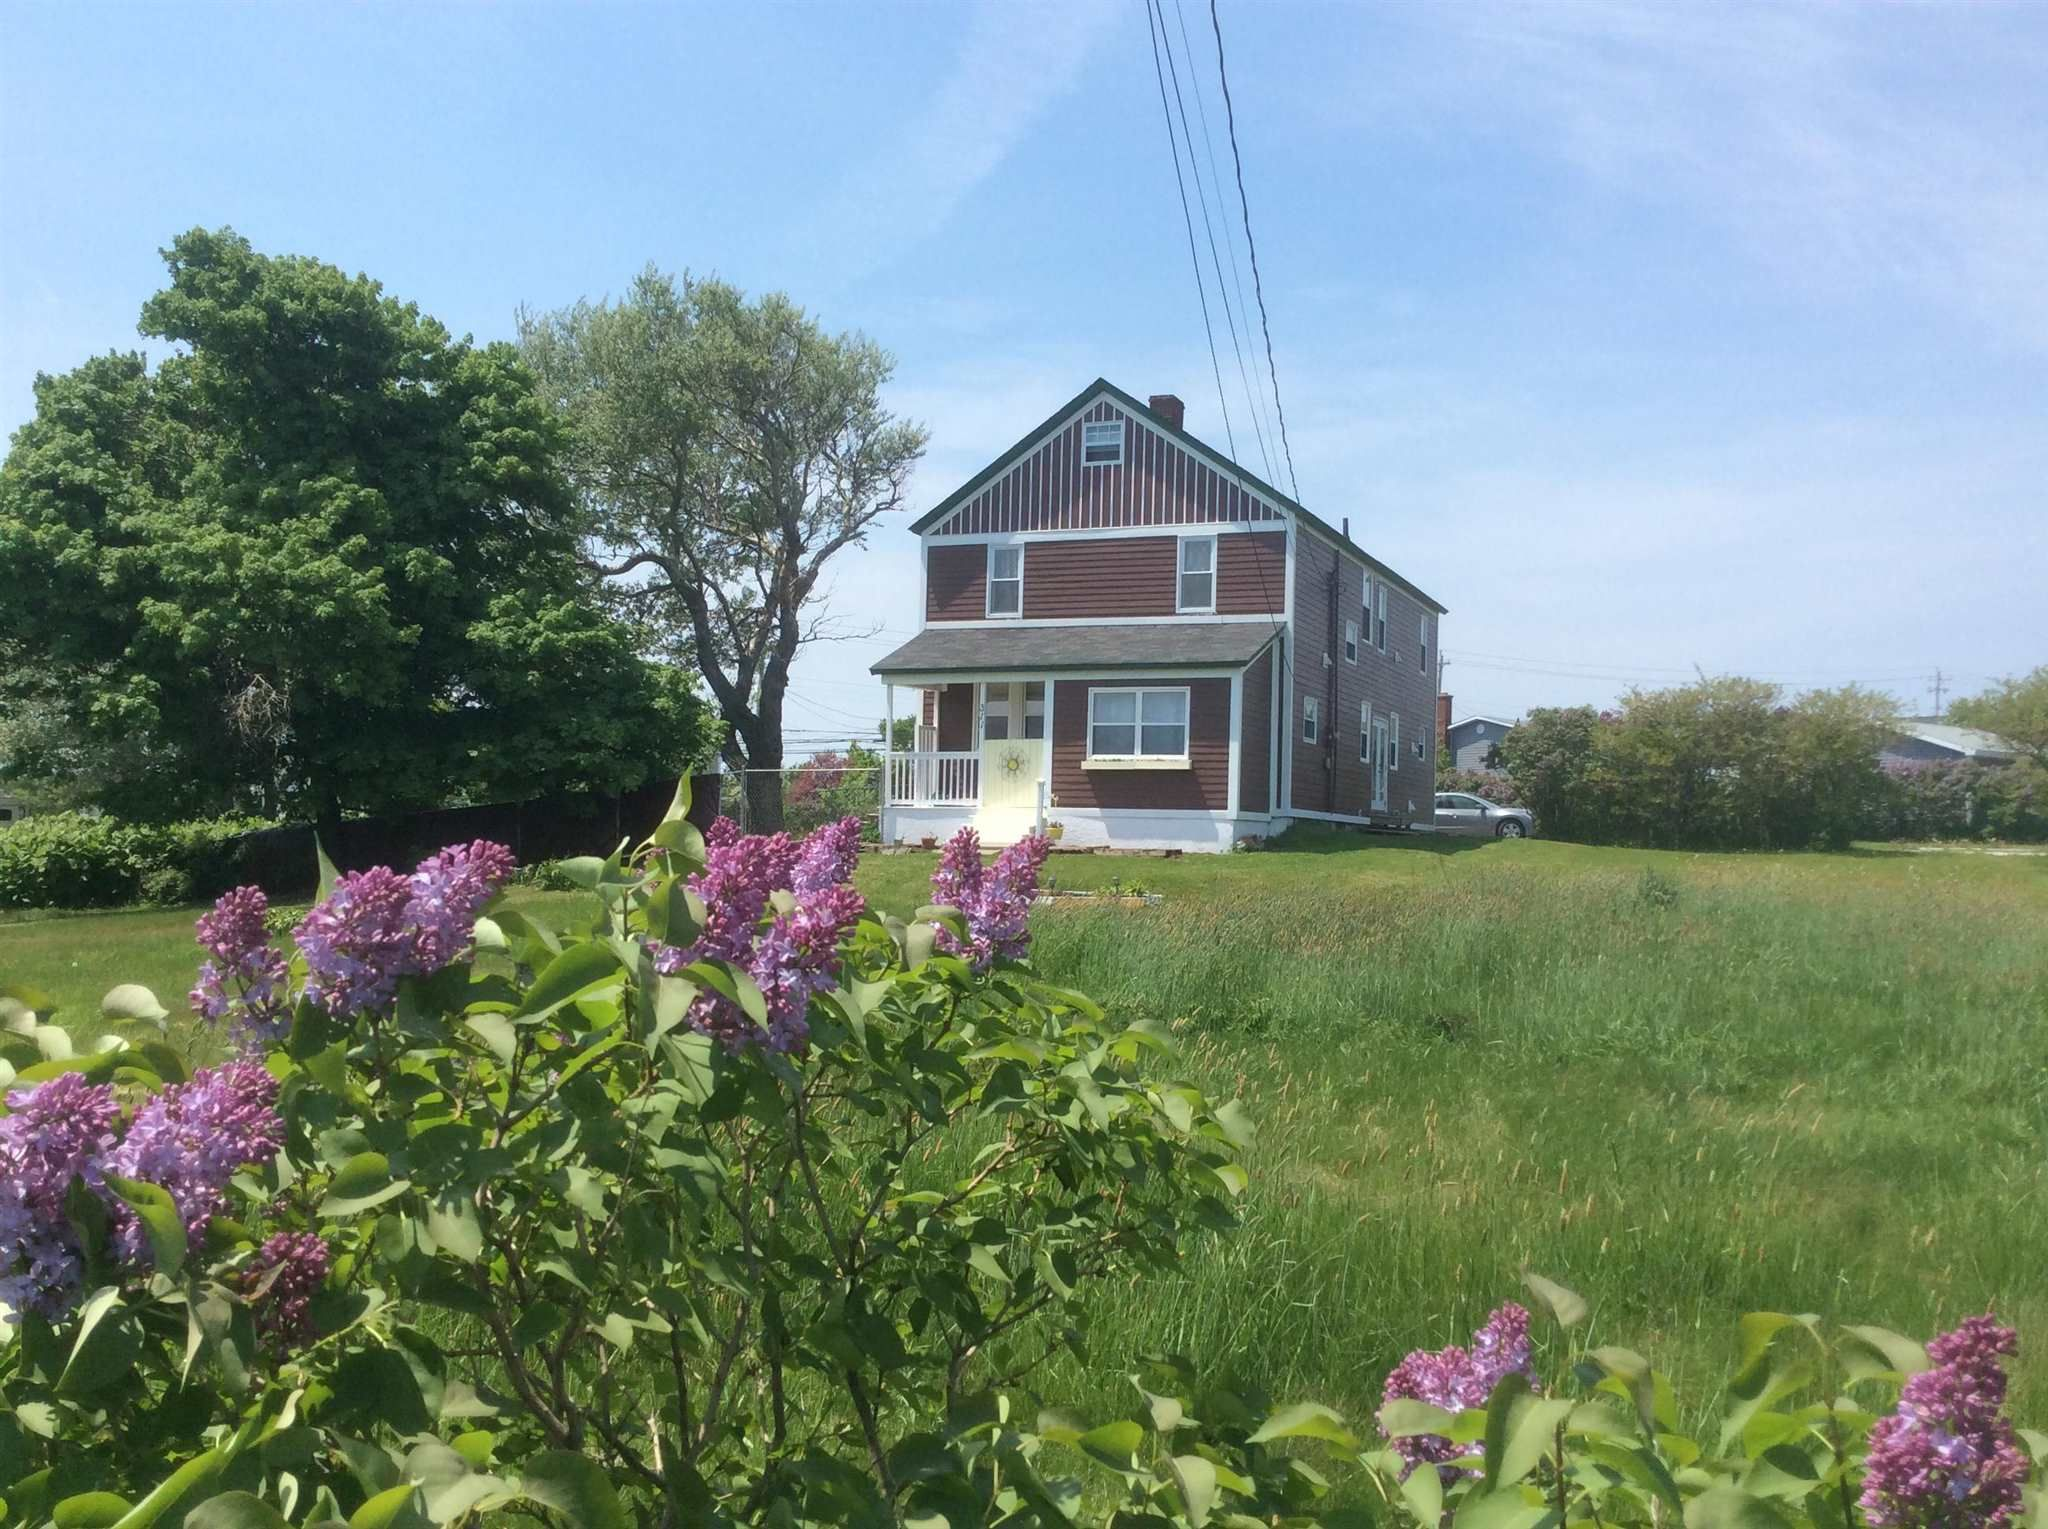 Main Photo: 311 Ling Street in New Waterford: 204-New Waterford Residential for sale (Cape Breton)  : MLS®# 202114258